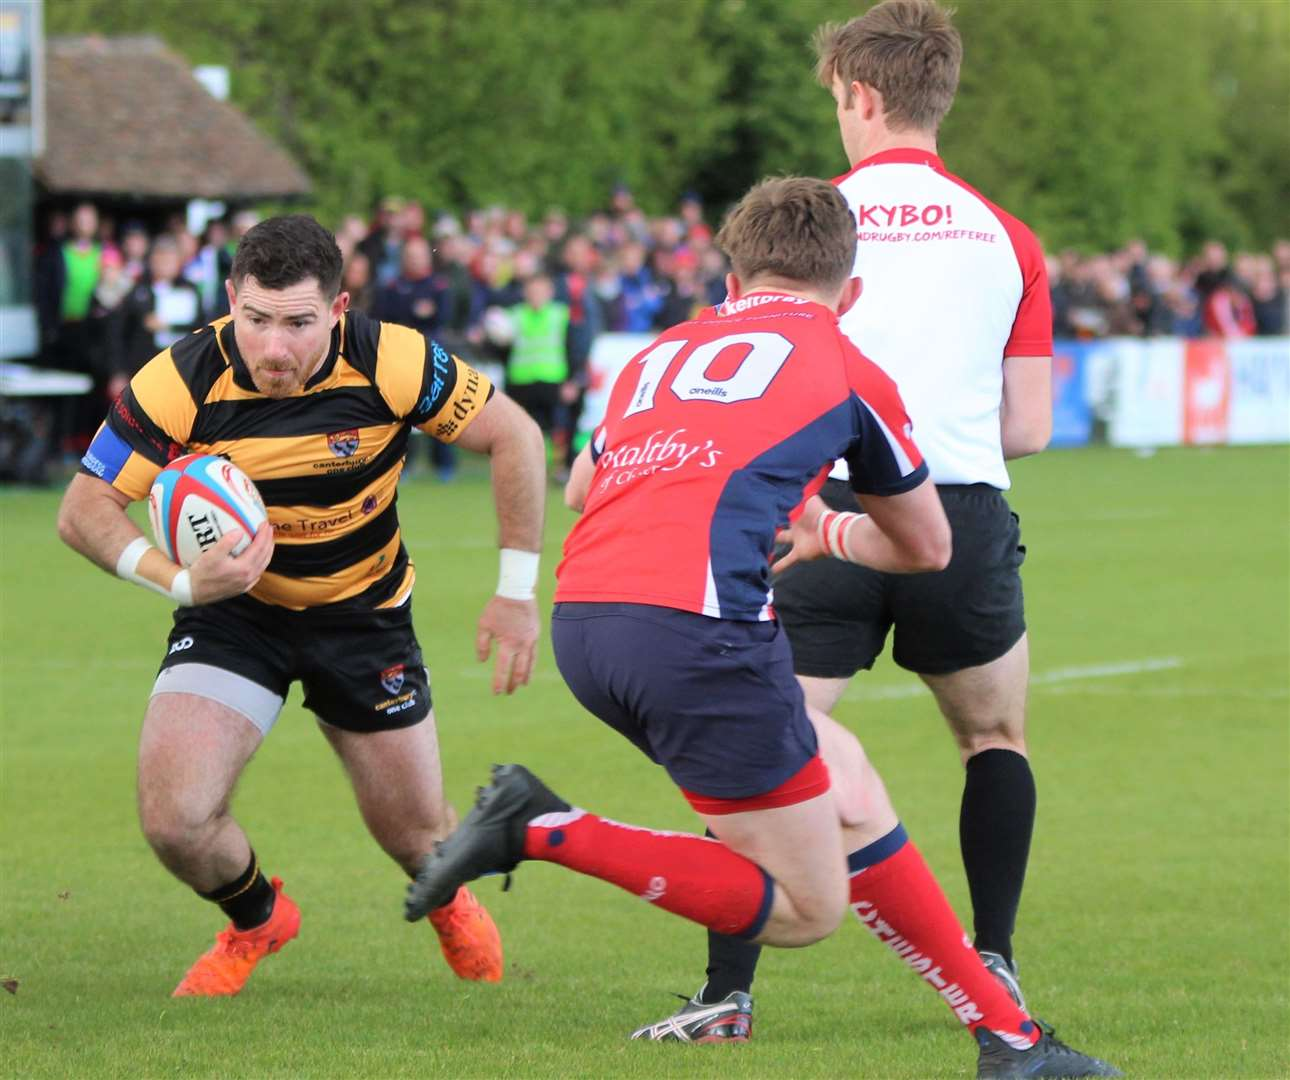 Dan Smart spots a gap to score Canterbury's opening try against Chester Picture: Phillipa Hilton